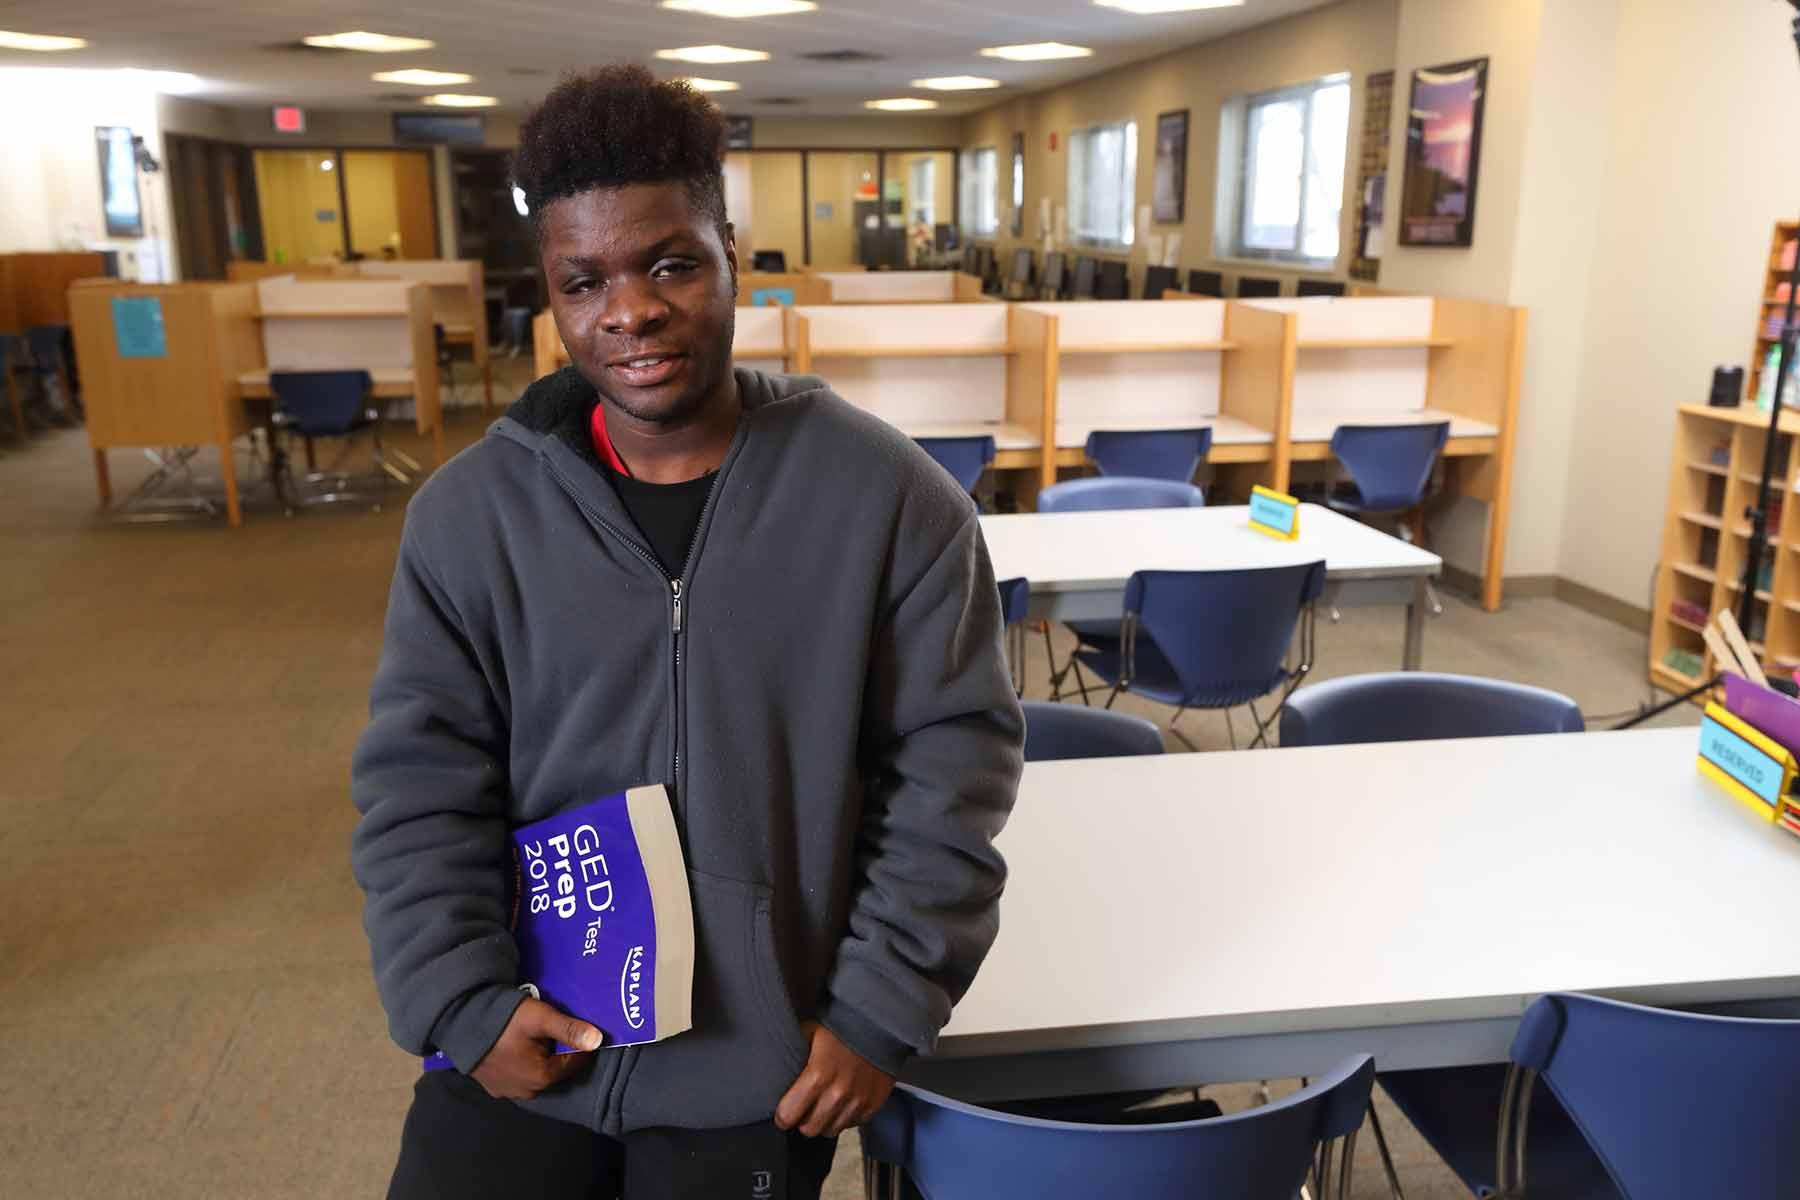 Student leaning on table with GED Studyguide